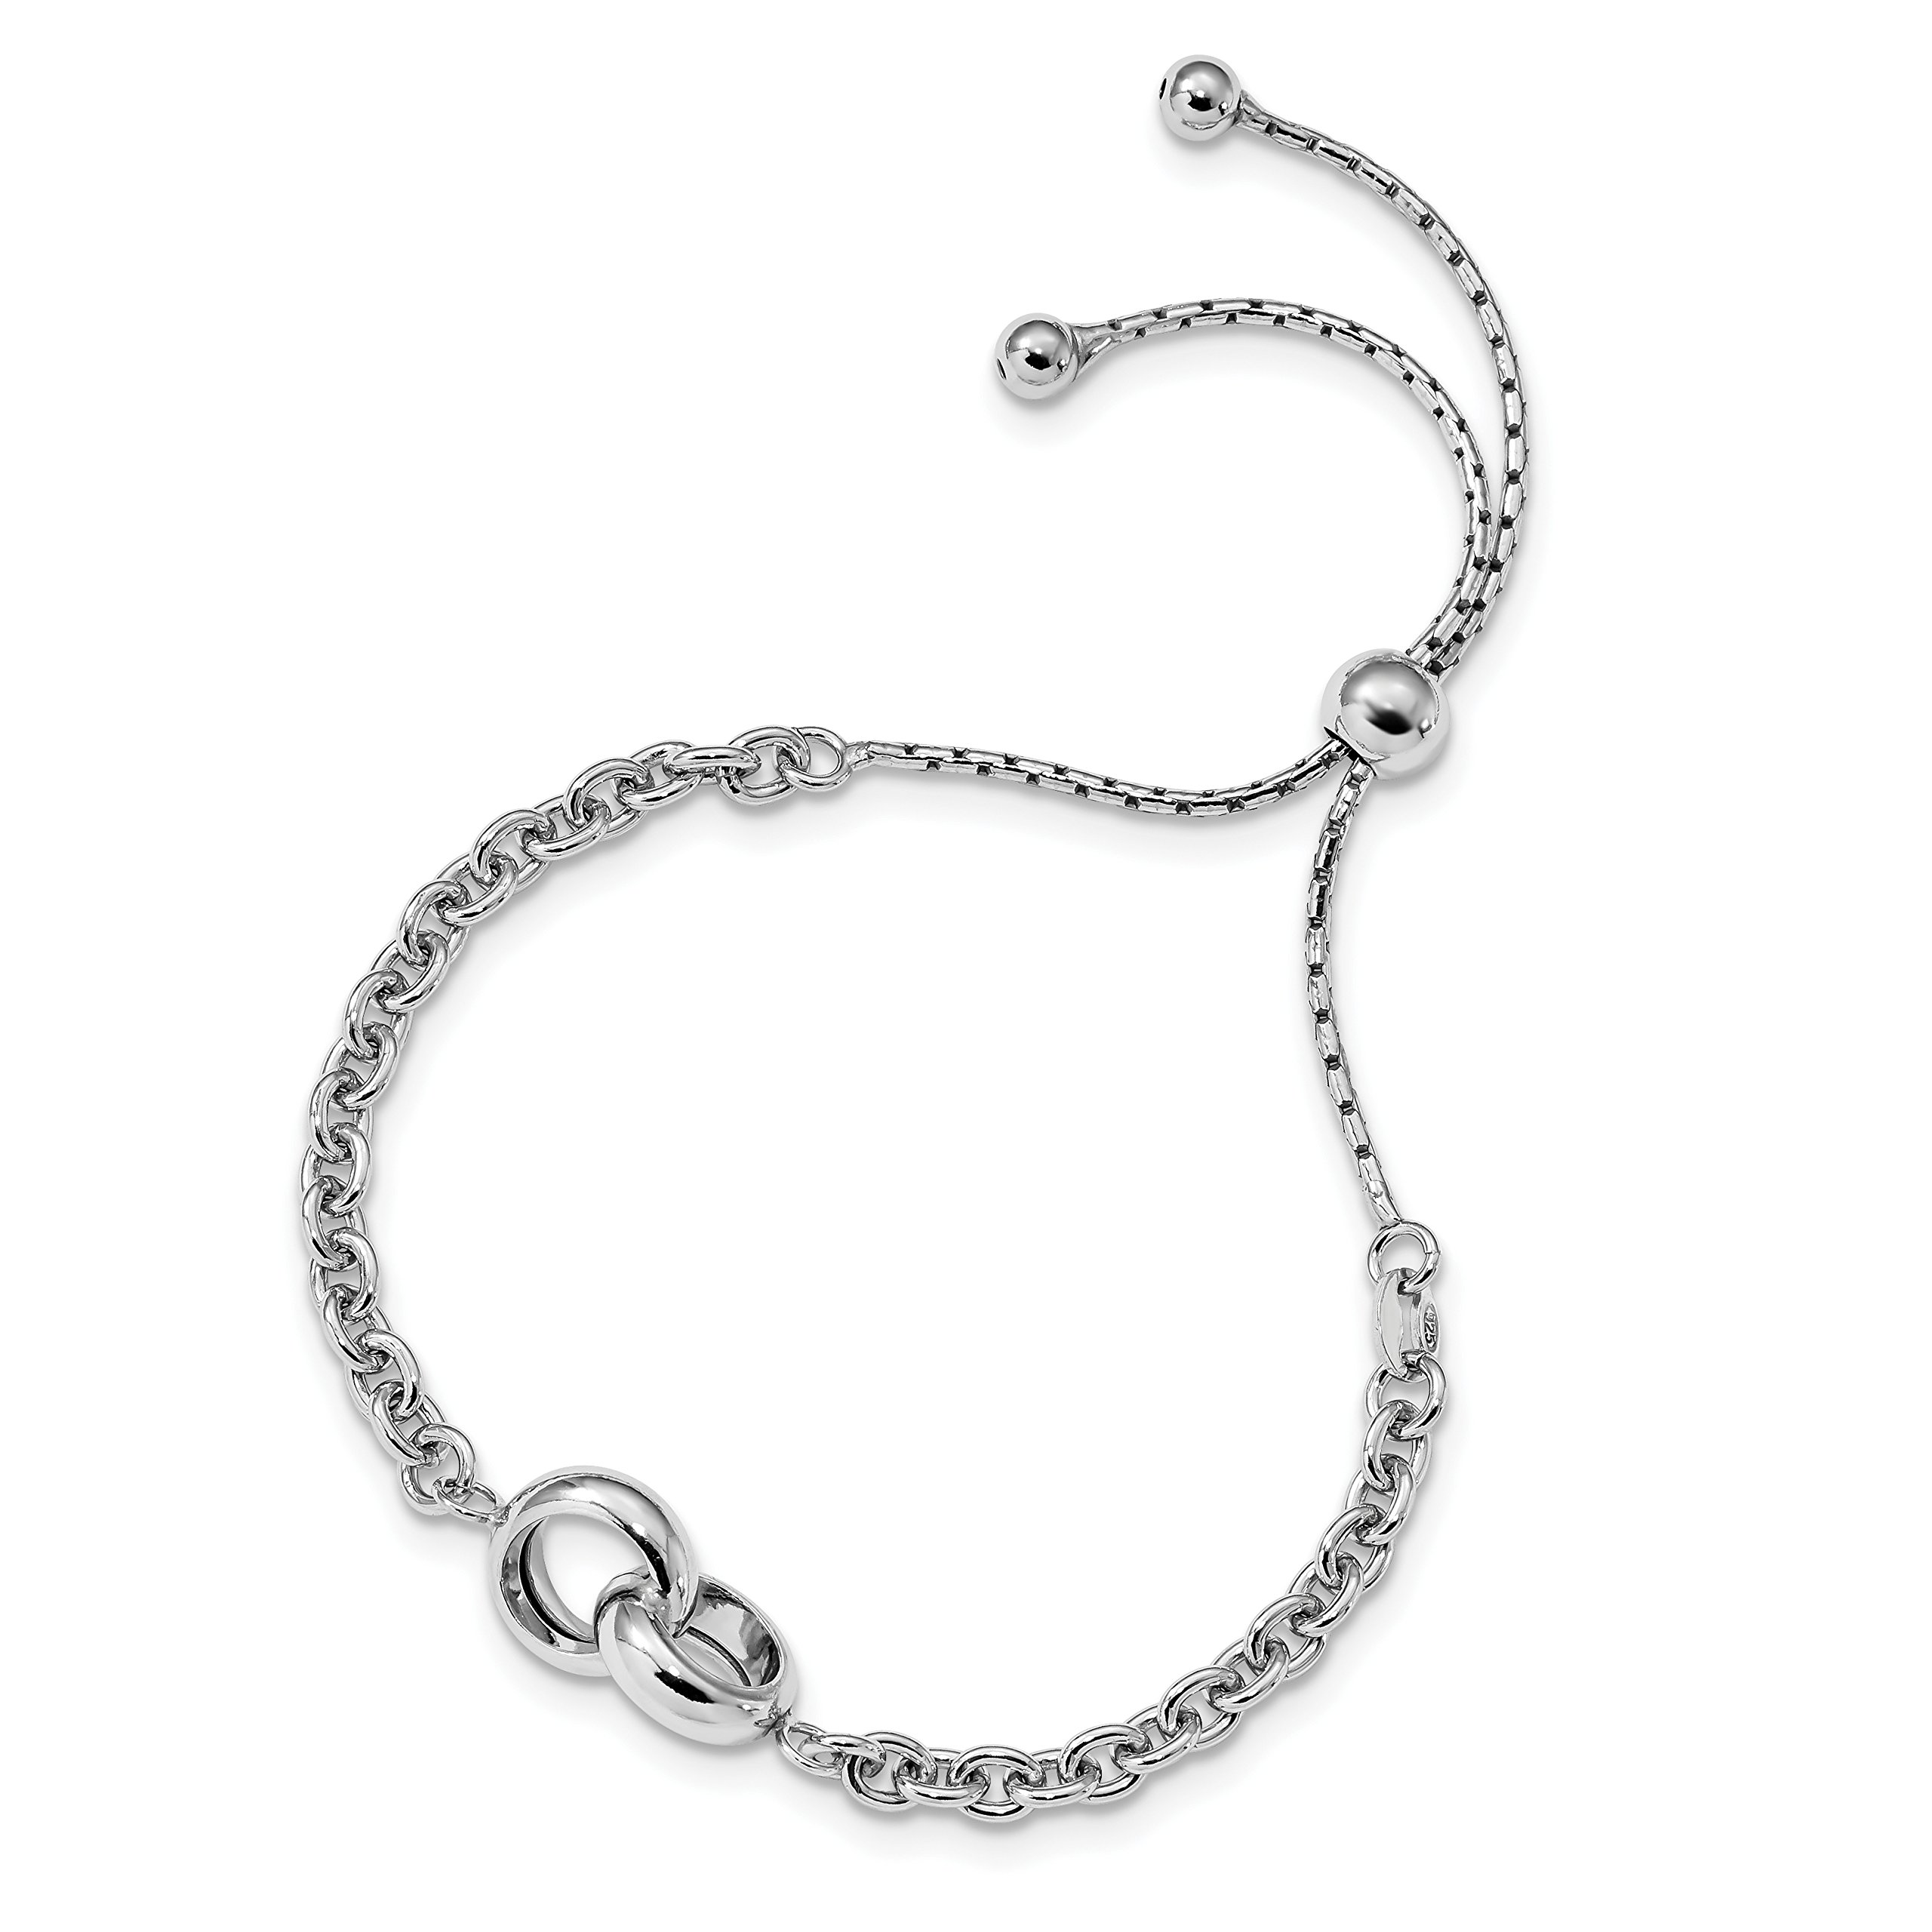 ICE CARATS 925 Sterling Silver Link Adjustable 4 9 Inch Bracelet Stretch Wrap Fine Jewelry Gift Set For Women Heart